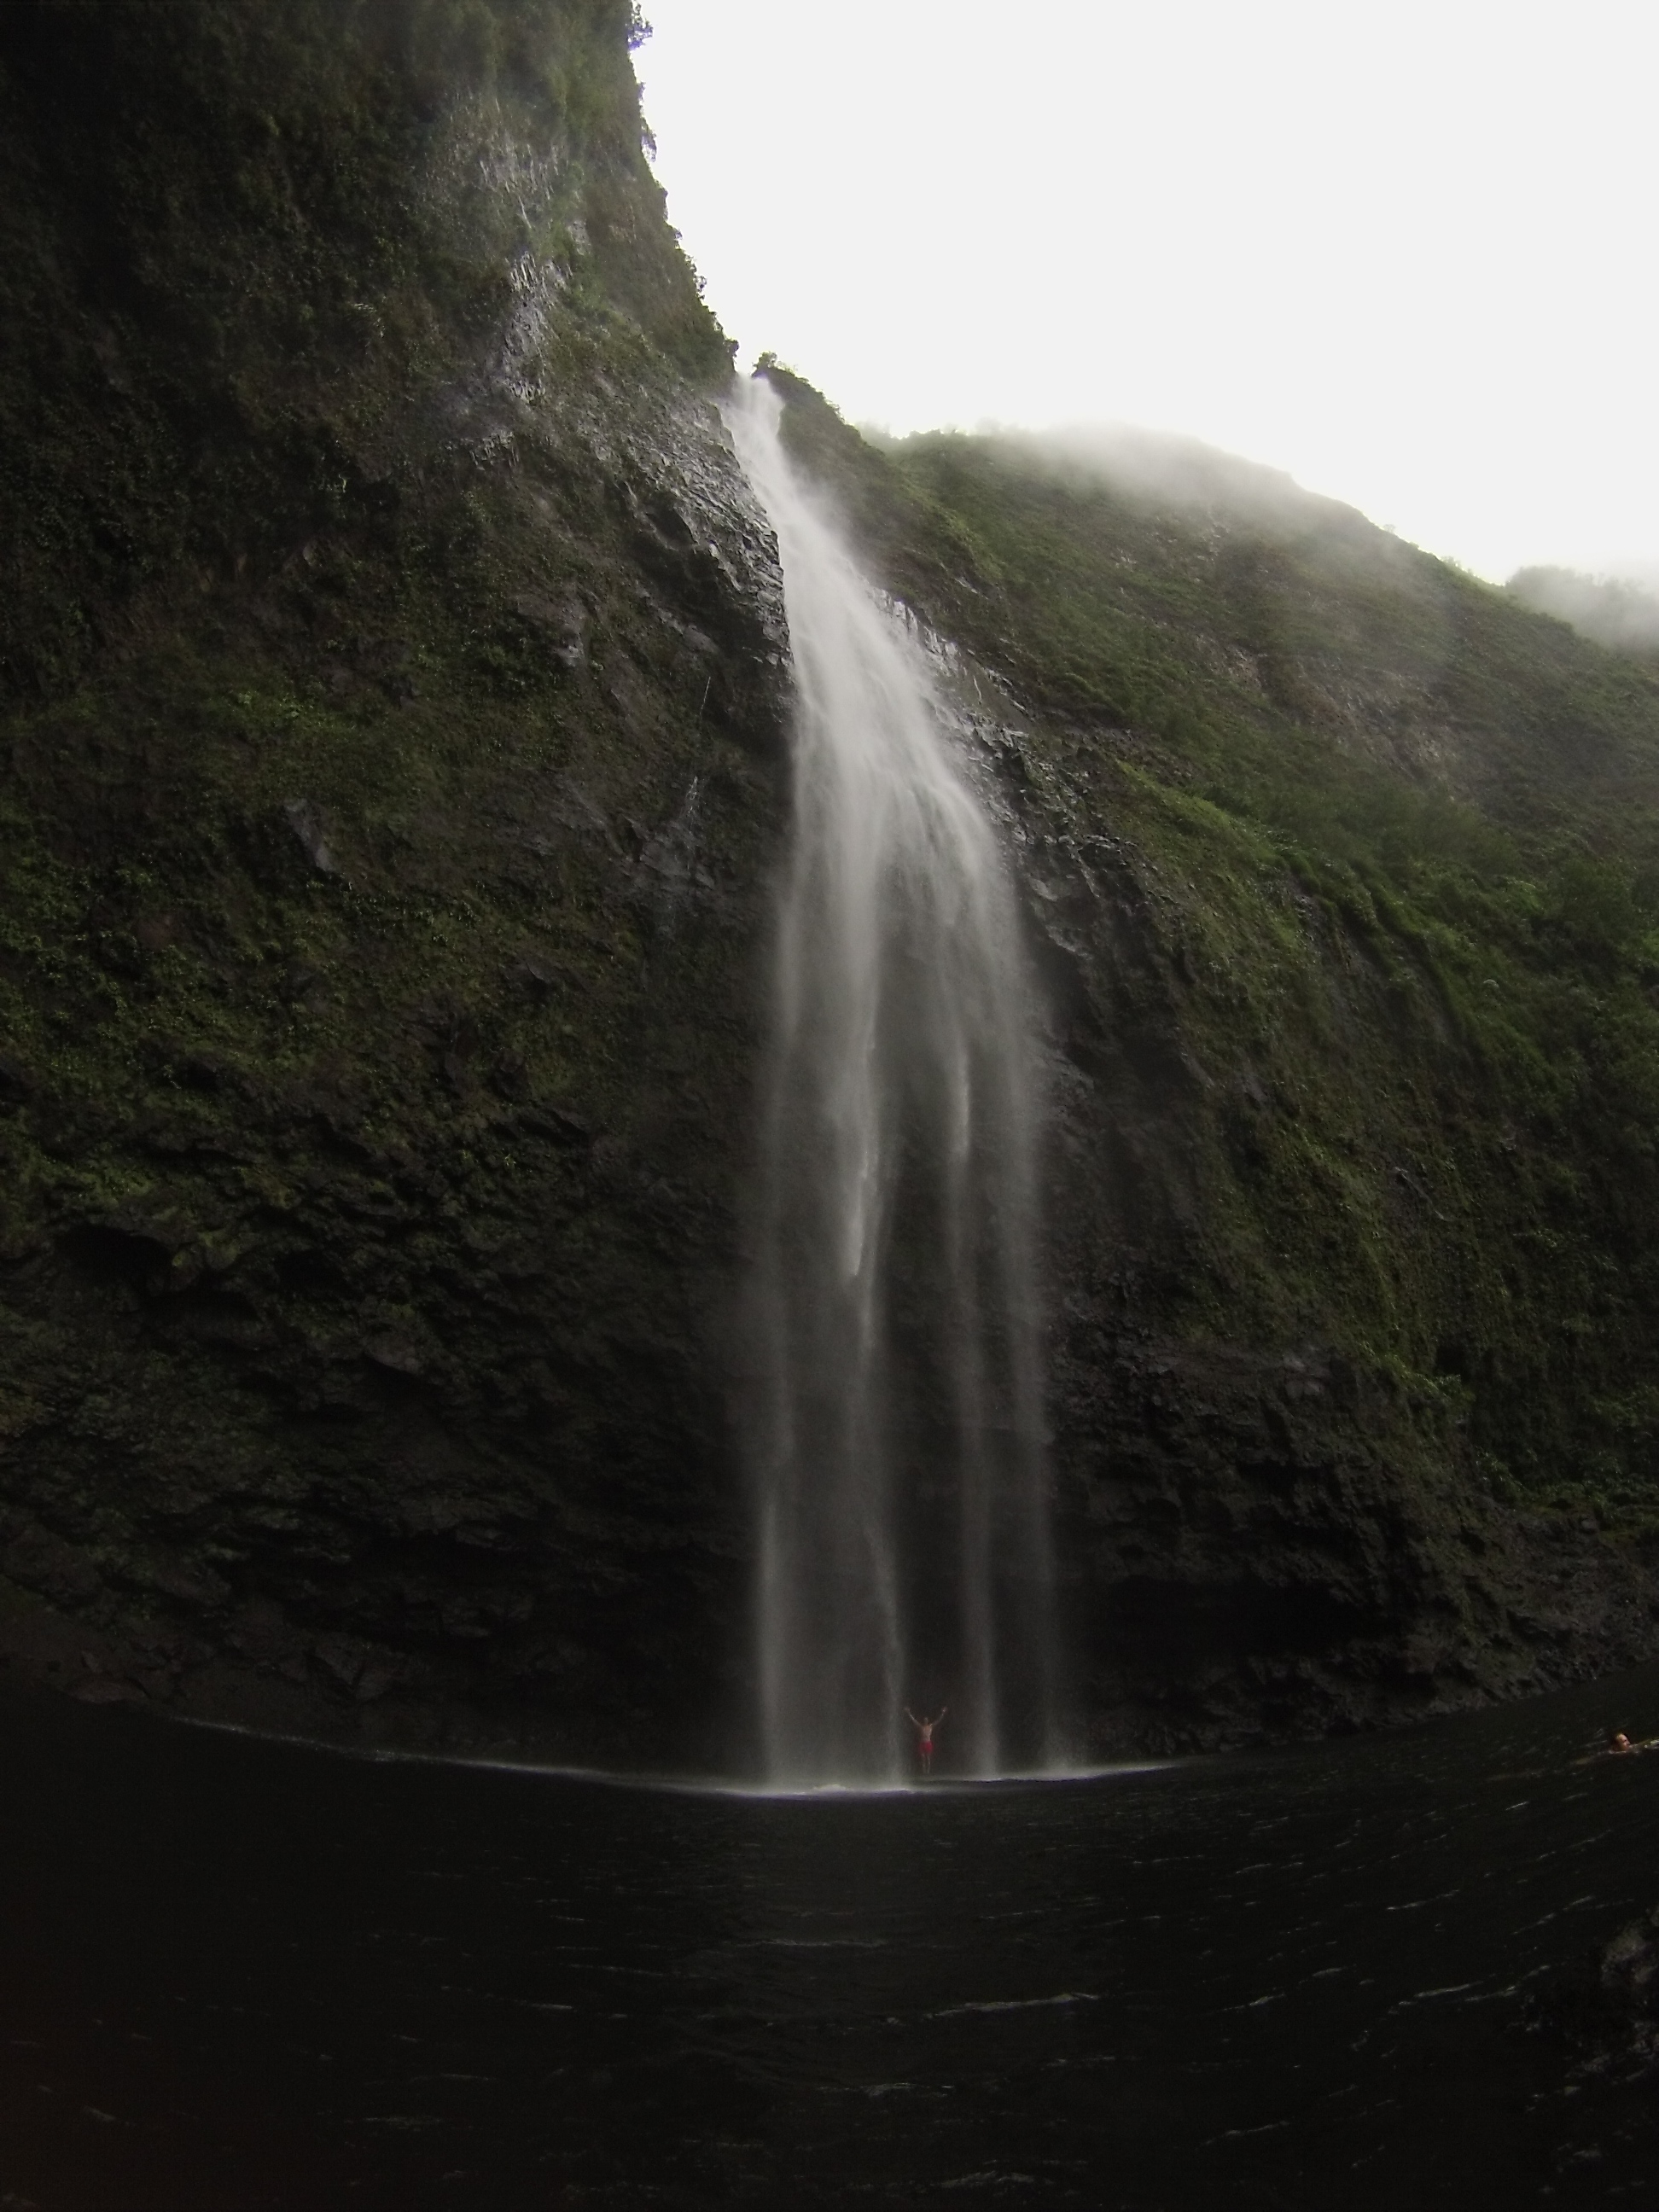 That's me celebrating under a 1600' waterfall in Kauai. Life is Beautiful